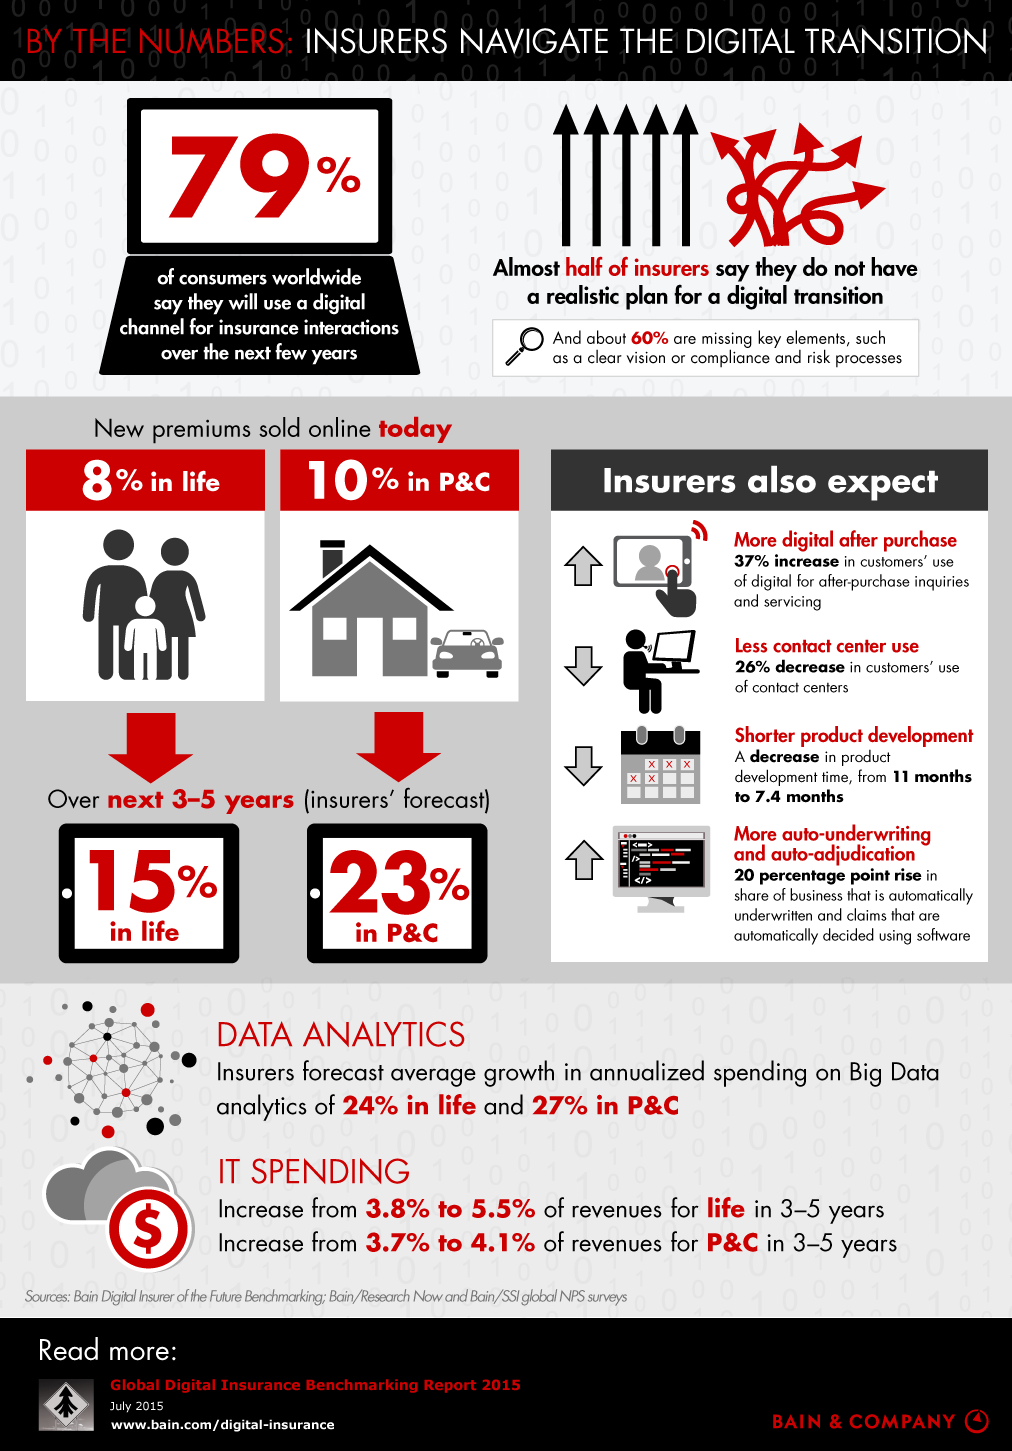 How Insurers Are Navigating The Digital Transition Infographic